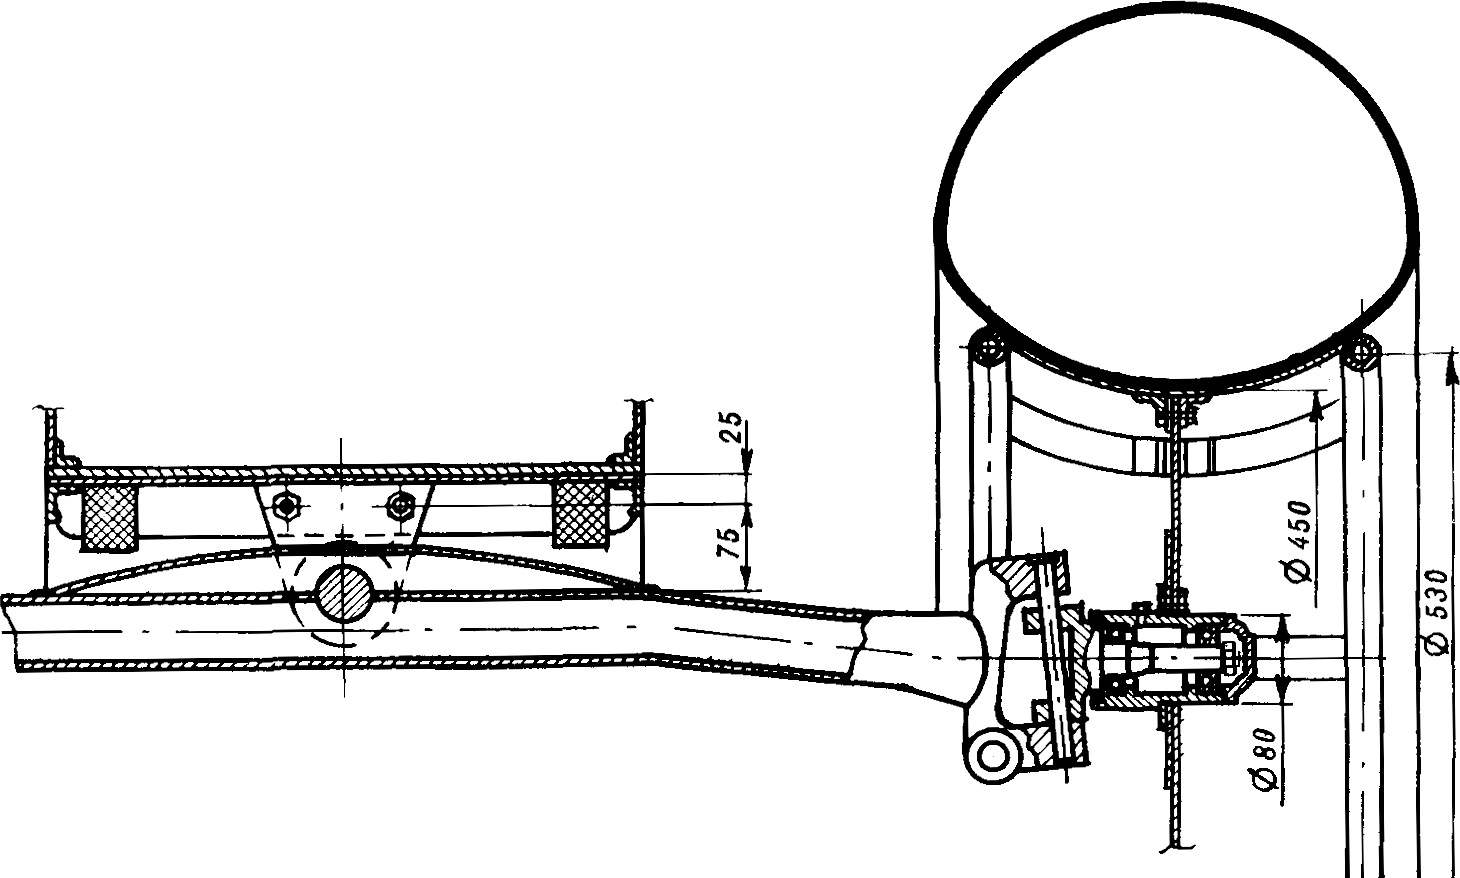 Fig. 8. The front axle of the vehicle.